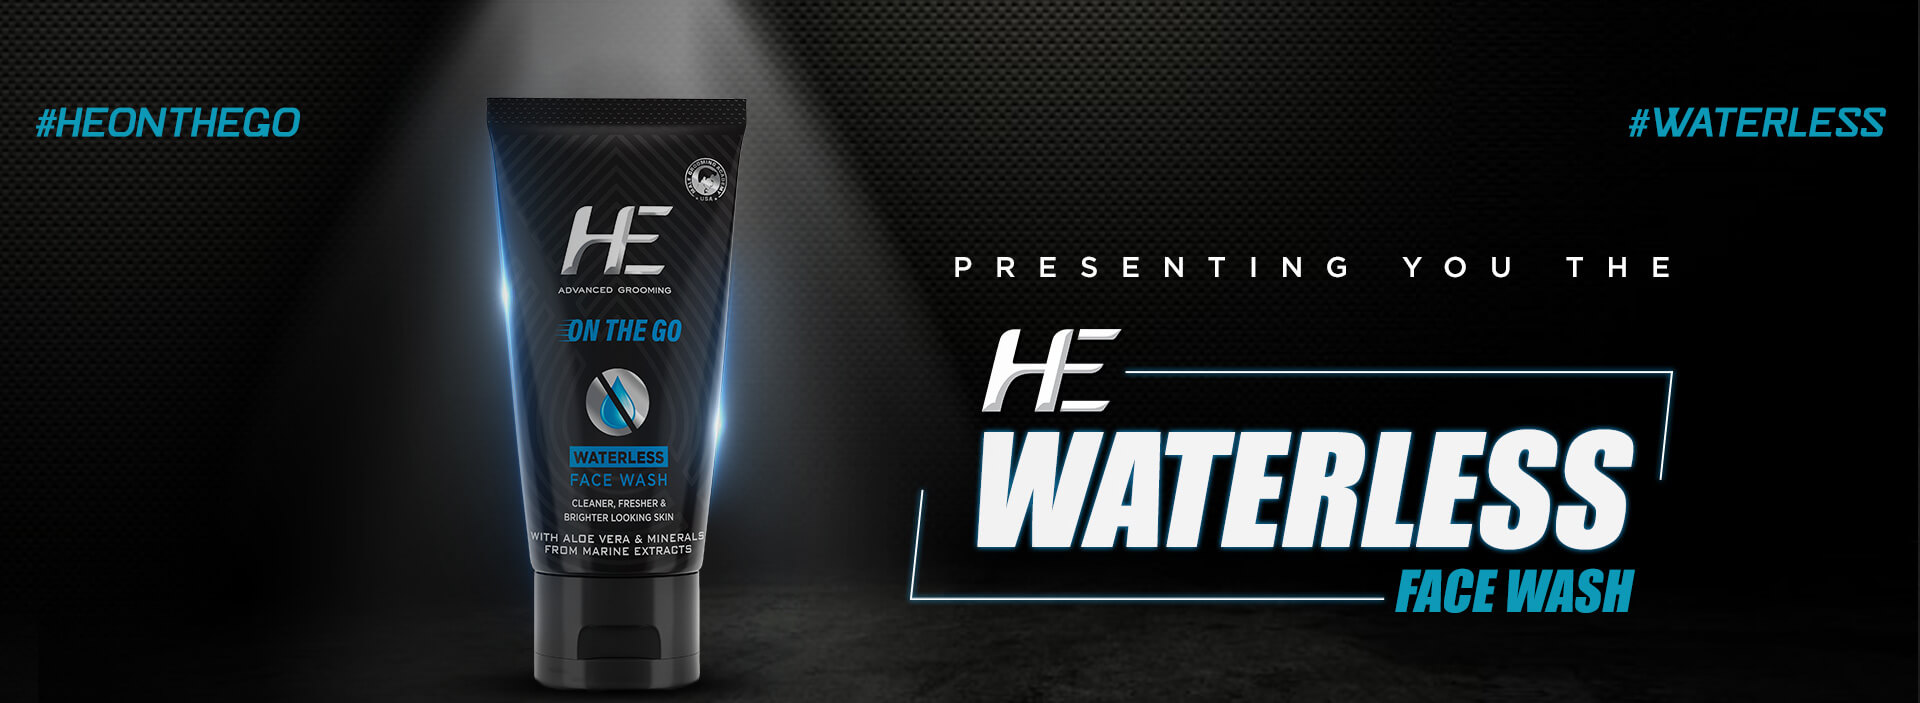 he waterless face wash for men